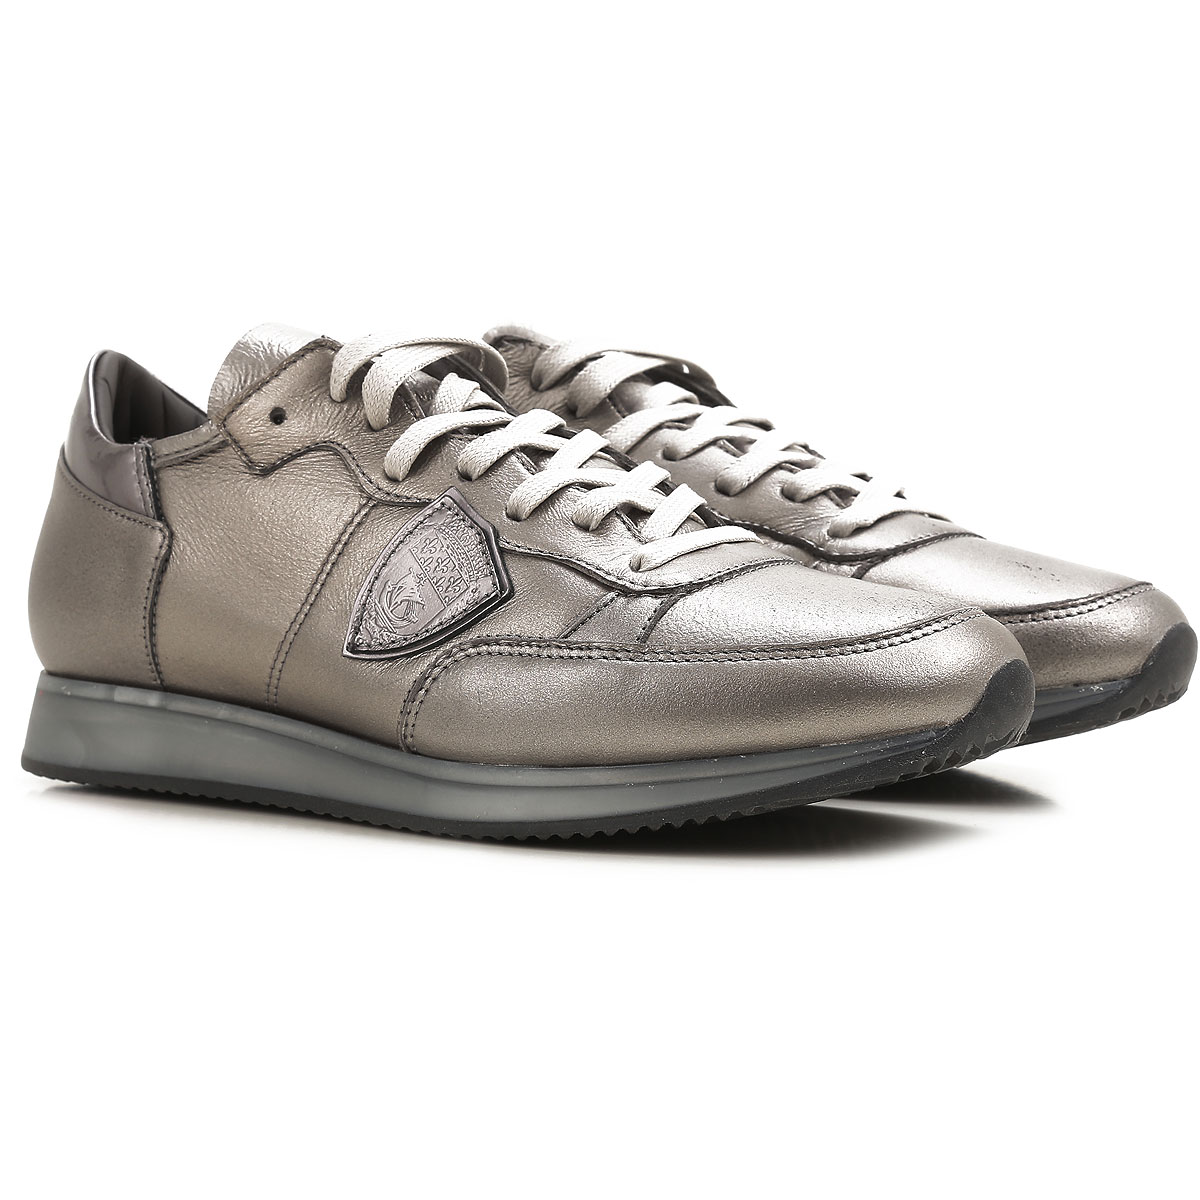 Philippe Model Sneakers for Women On Sale in Outlet, Silver, Leather, 2019, 4.5 5.5 6.5